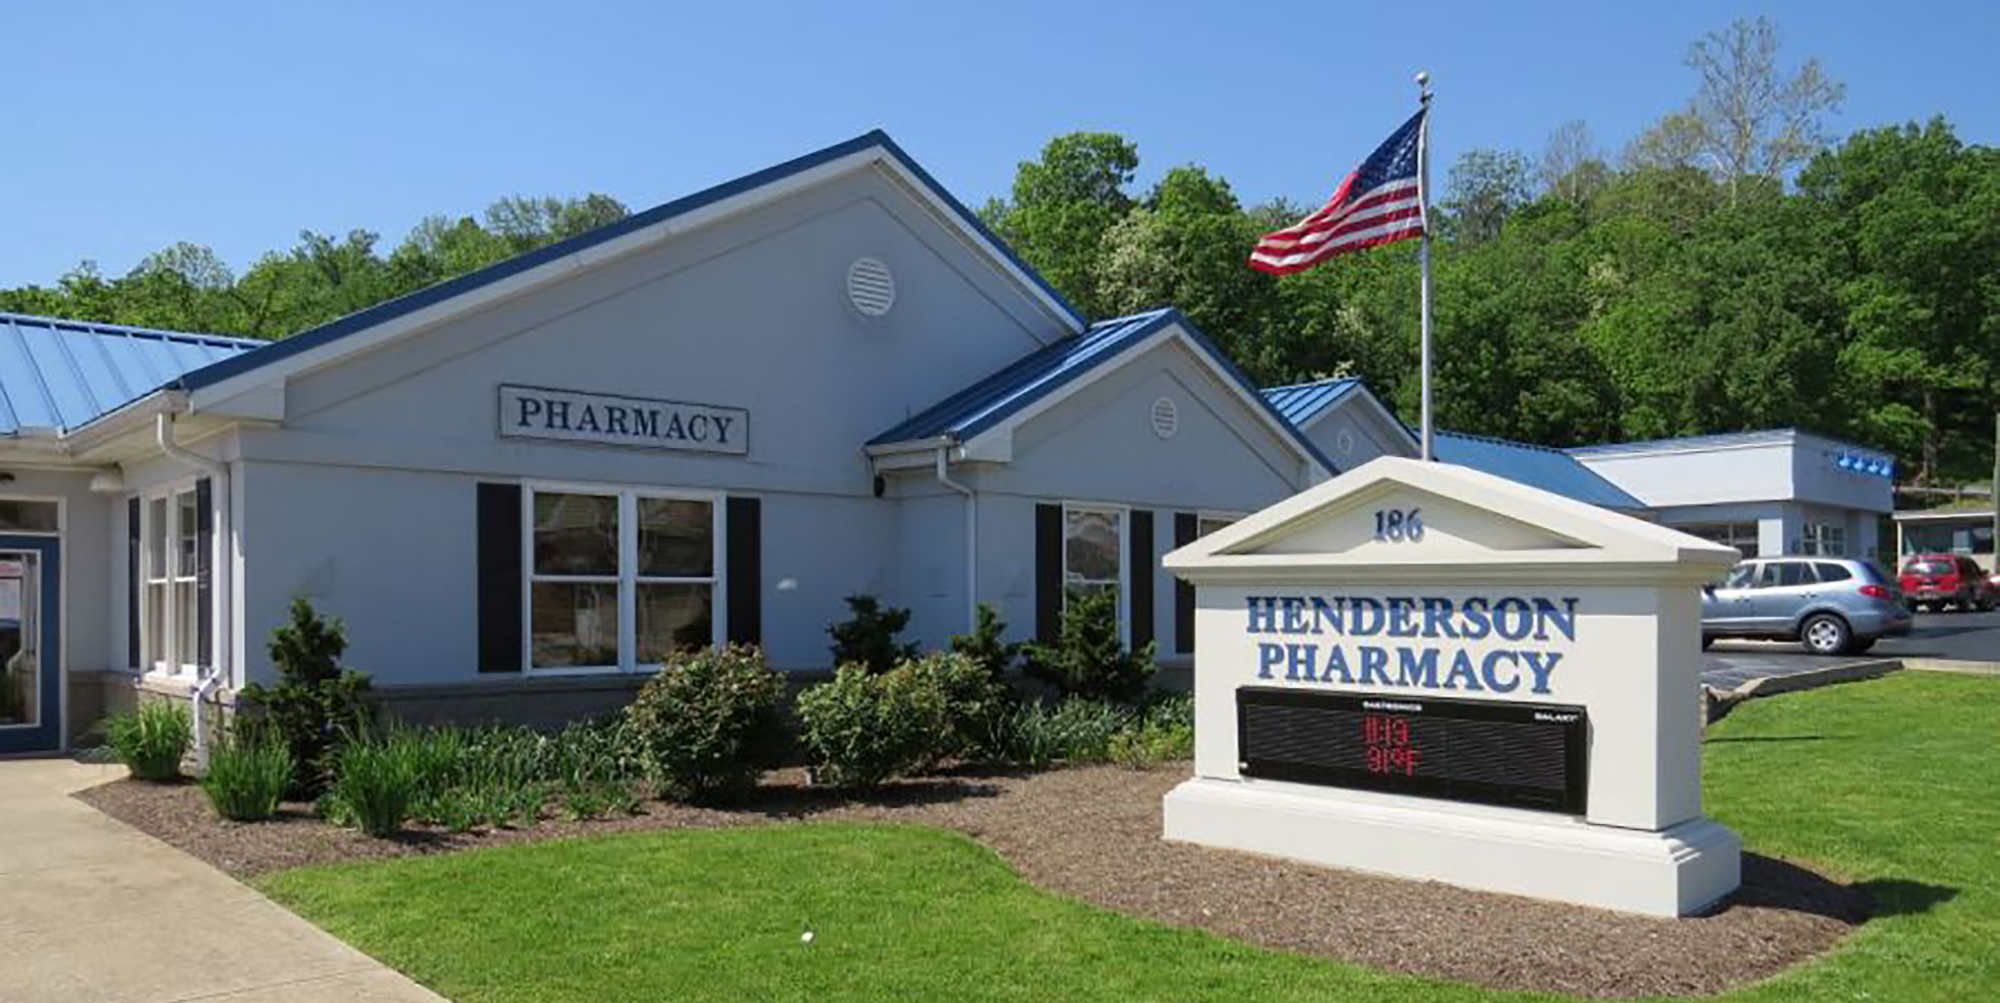 Henderson Pharmacy building and sign